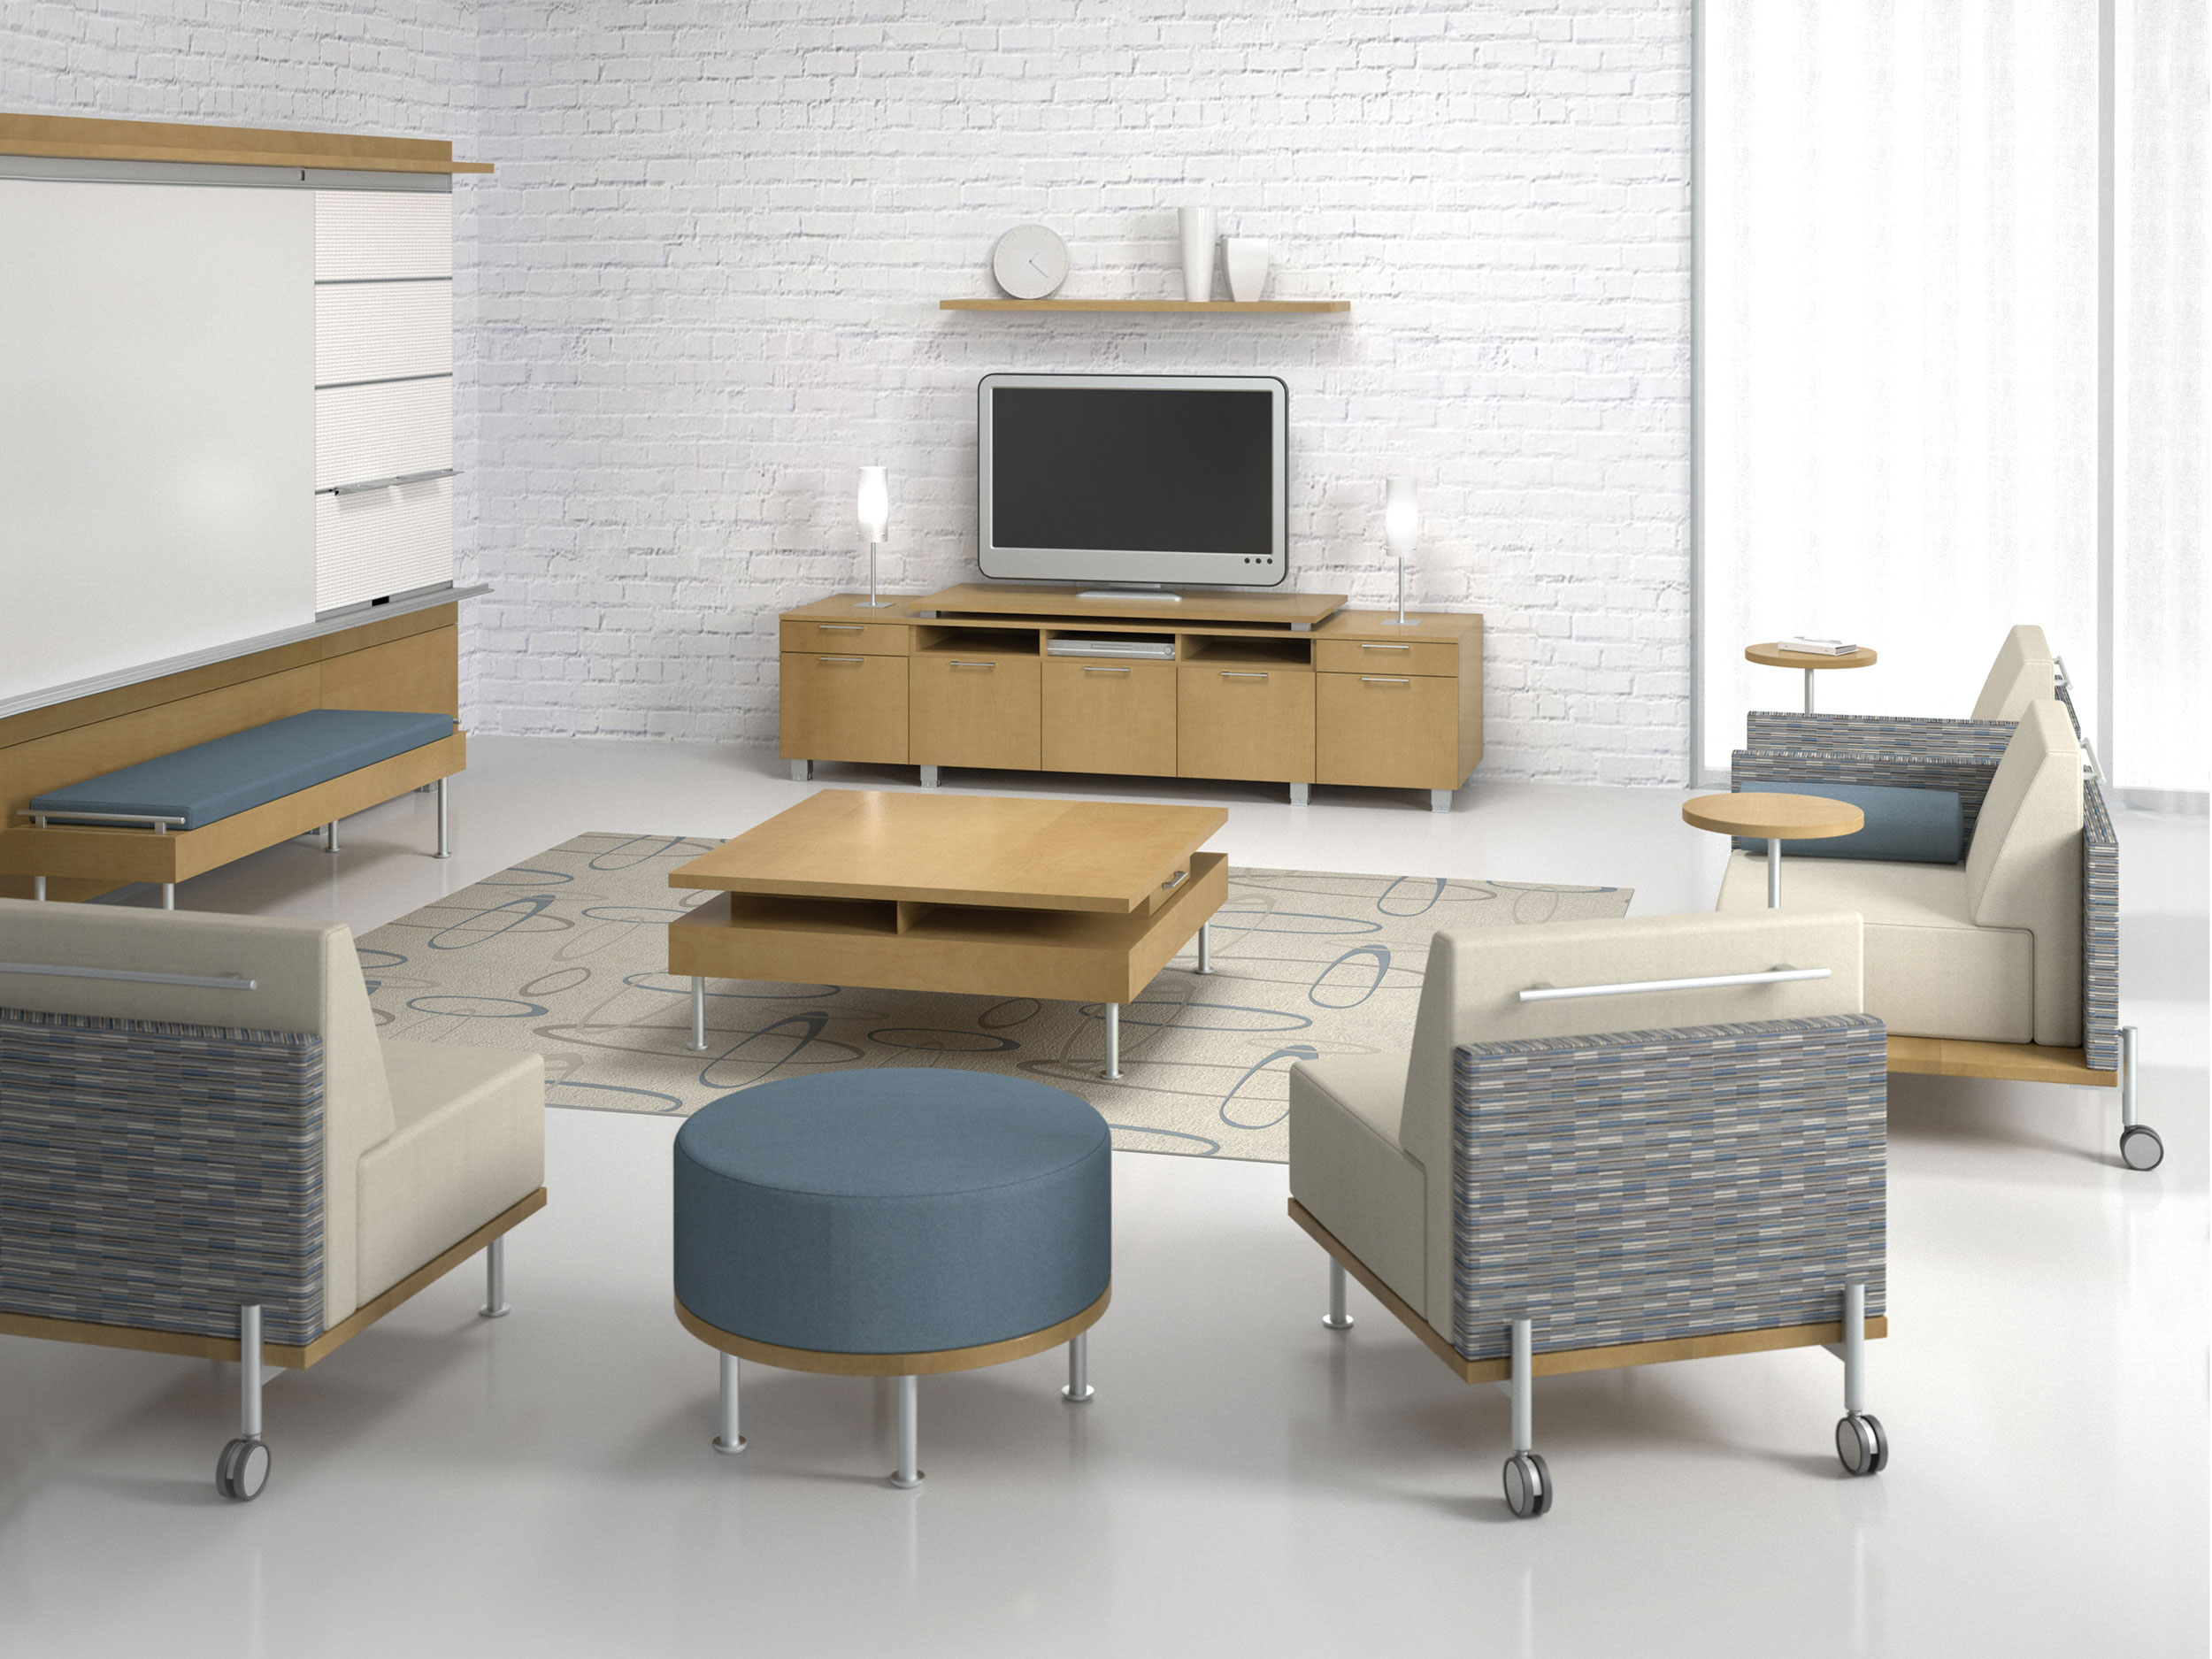 collaborative workspace – modern office furniture